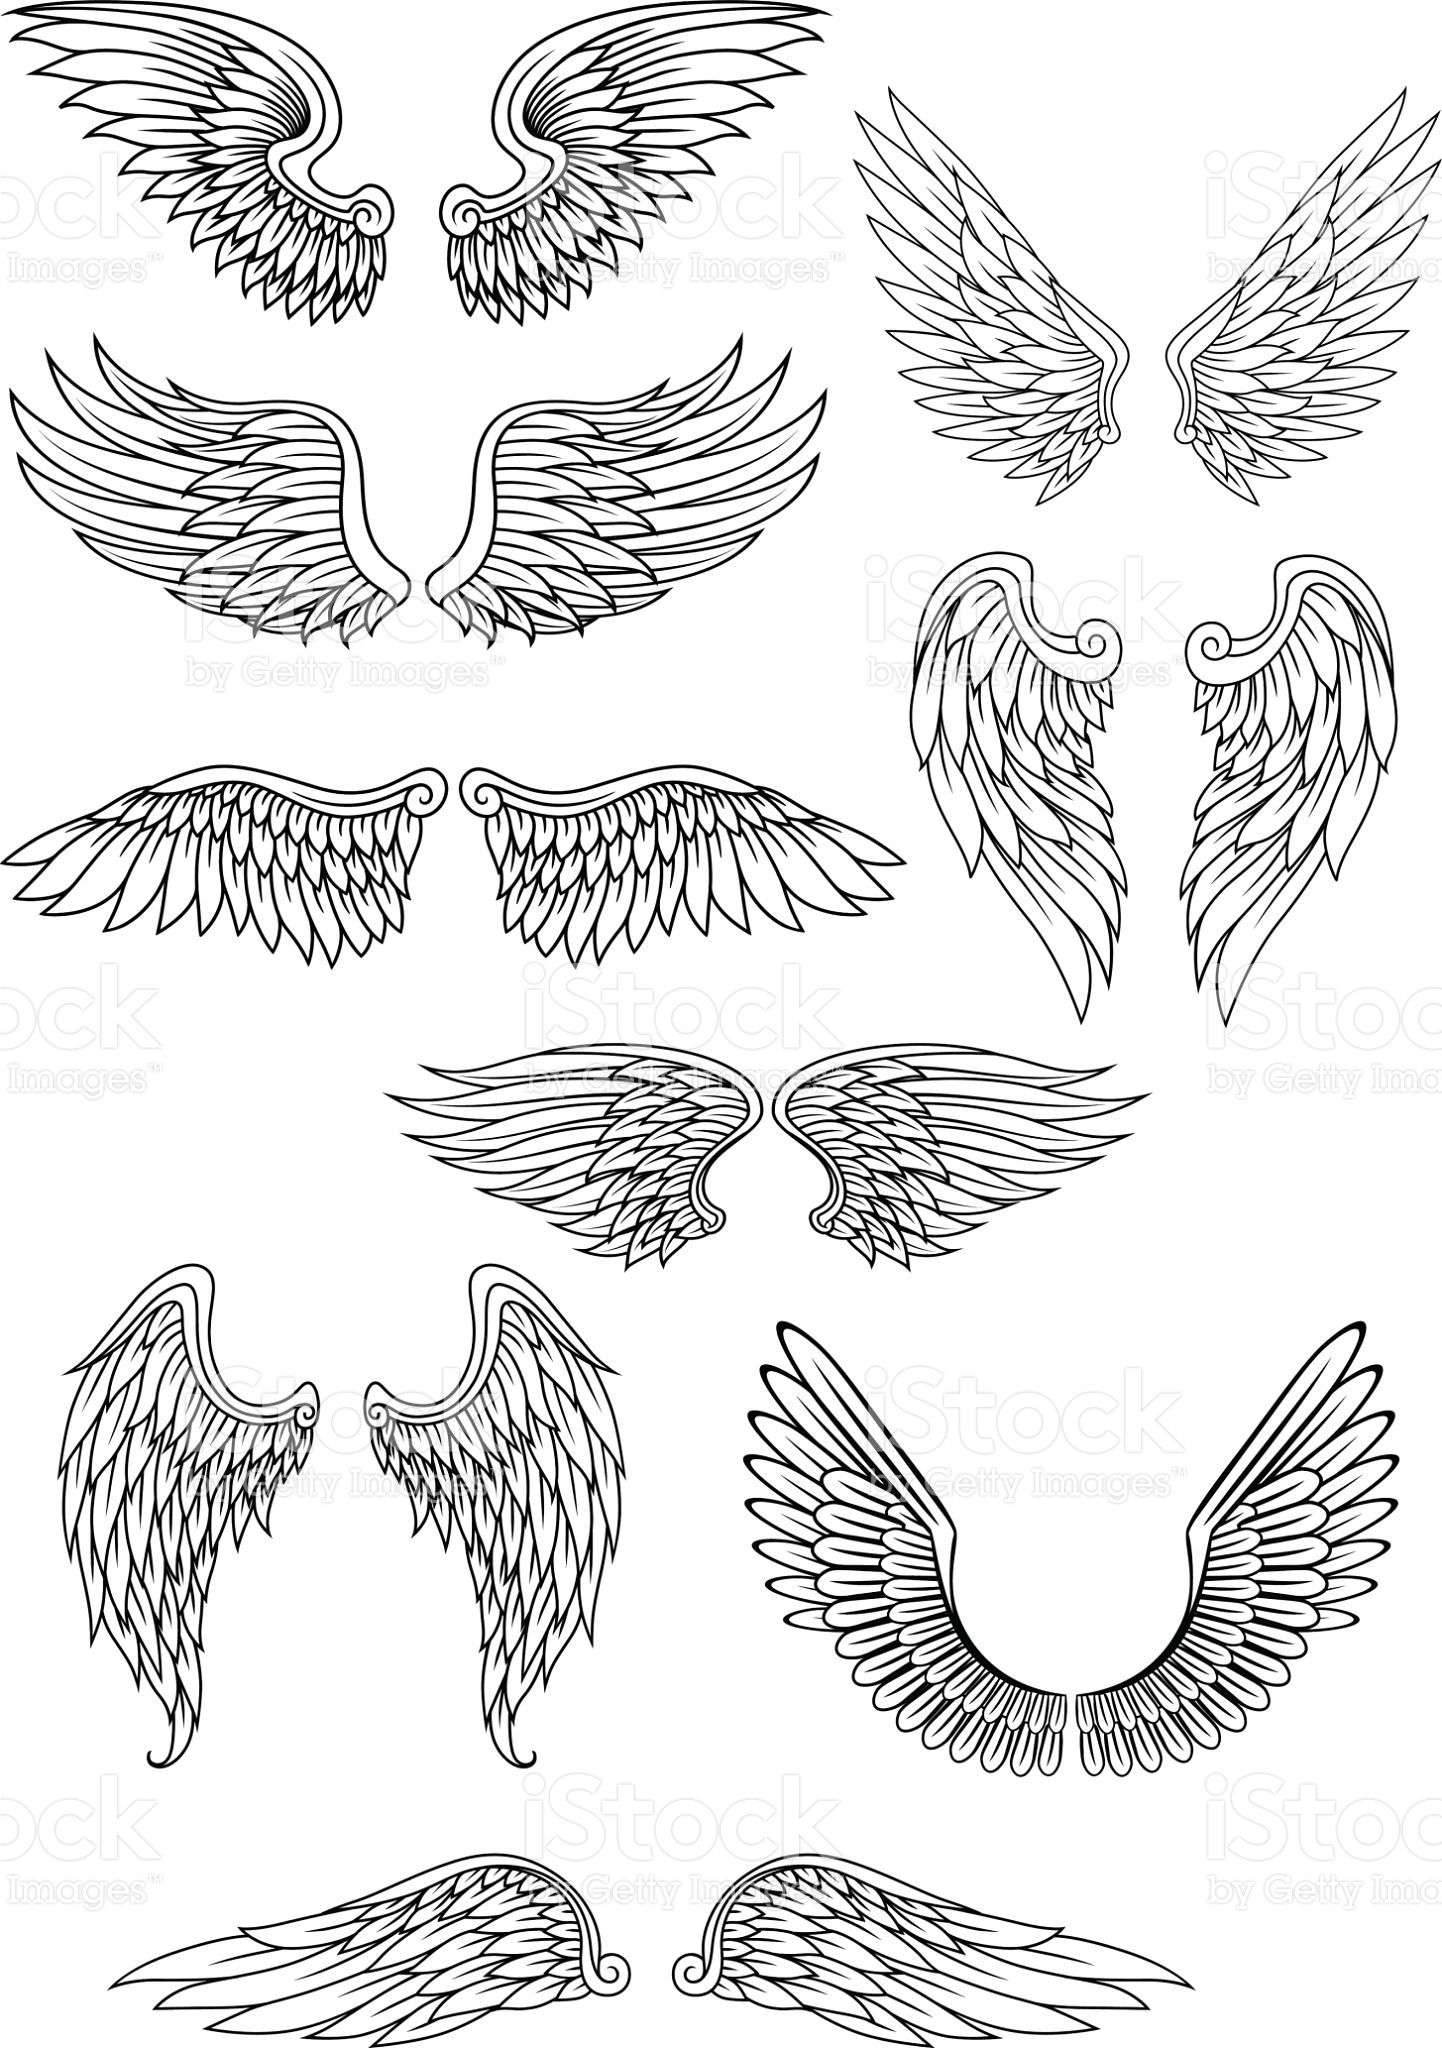 Heraldic Bird Or Angel Wings Set Isolated On White For Religious